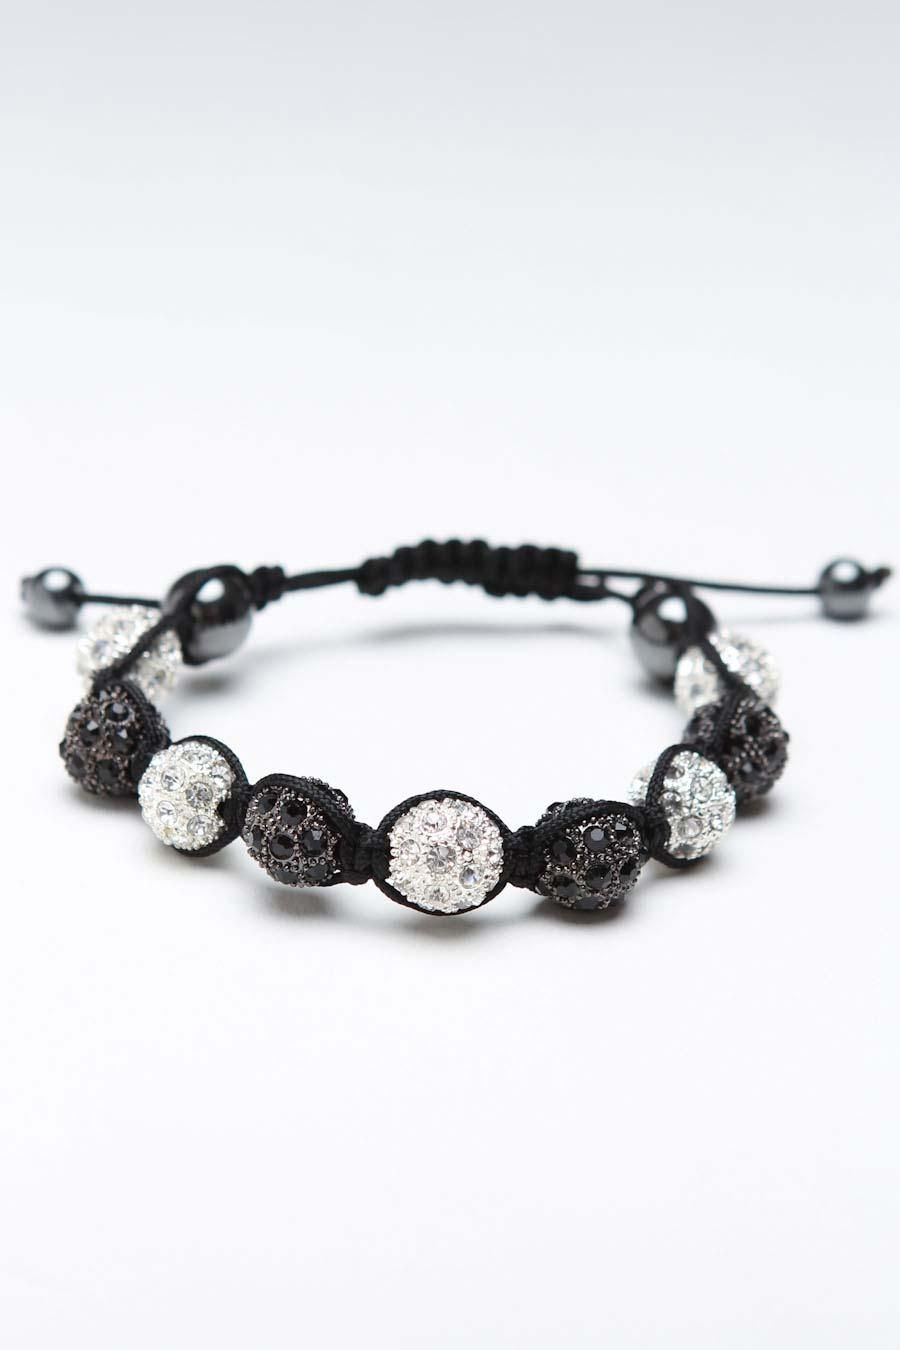 Ornaments of Shamballa by own hands: beautiful bracelets, earrings and beads